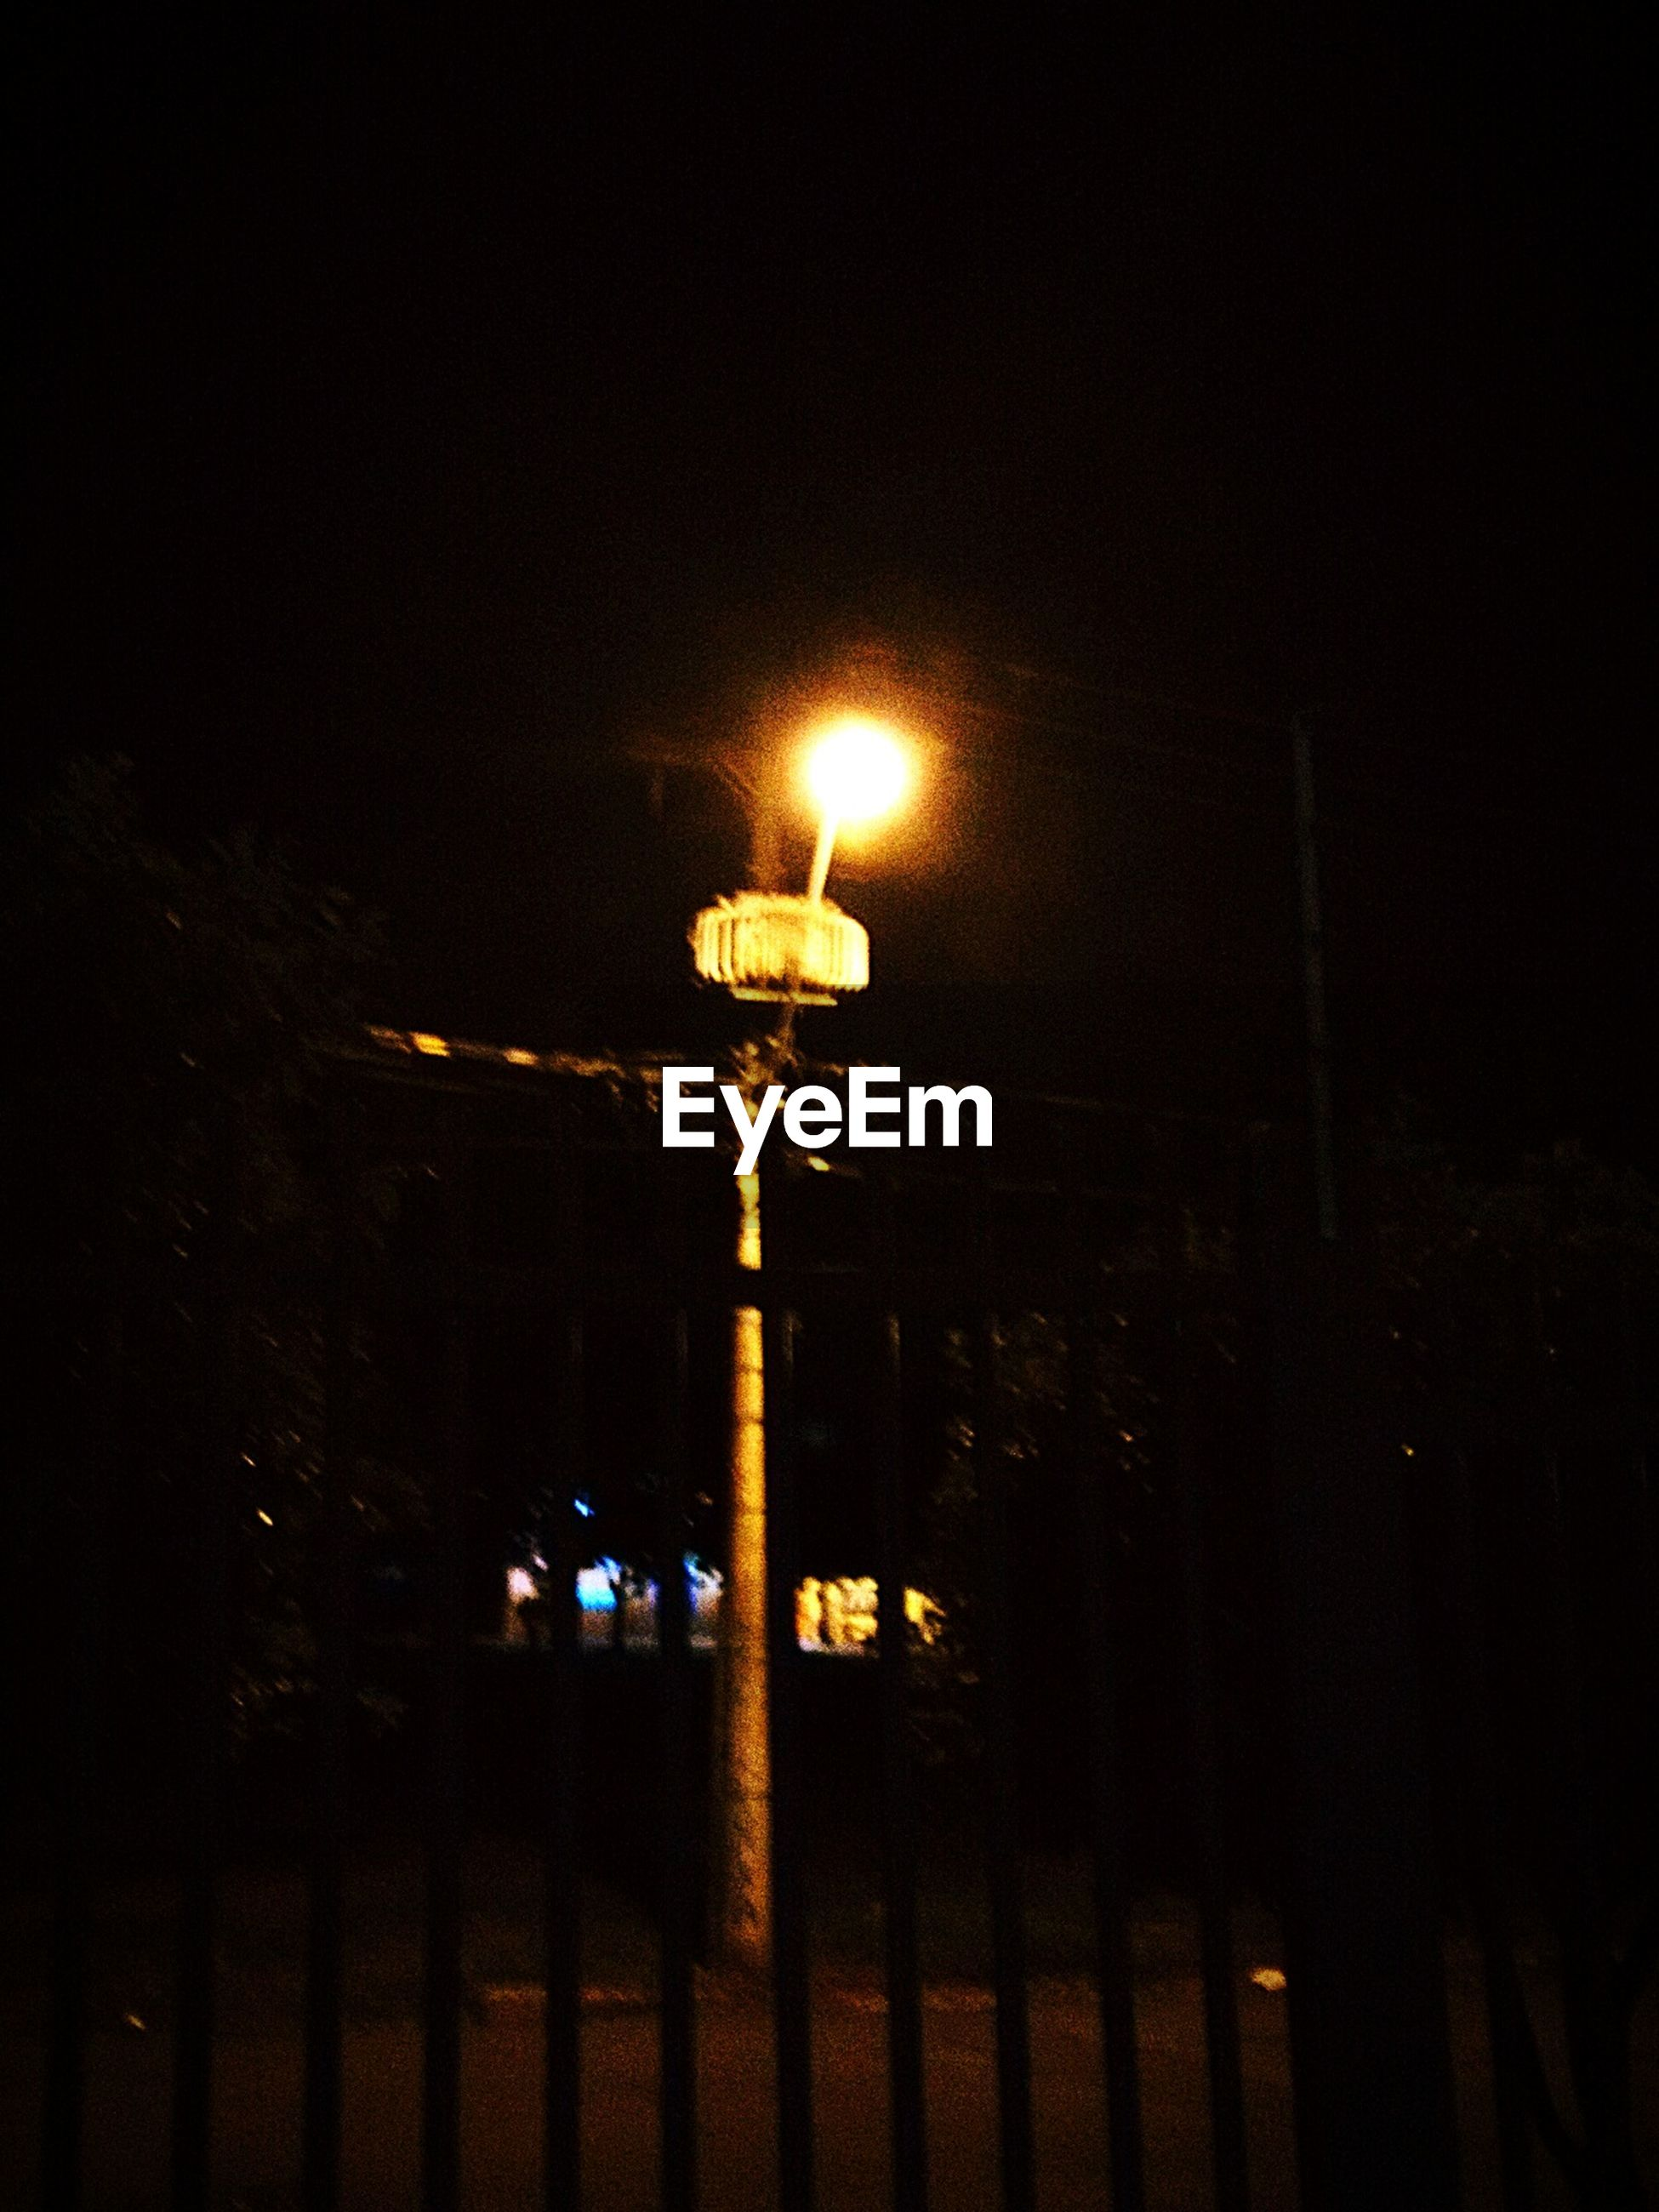 illuminated, lighting equipment, night, street light, electricity, low angle view, electric light, sky, fuel and power generation, power line, dark, technology, light - natural phenomenon, silhouette, glowing, power supply, pole, no people, electricity pylon, outdoors